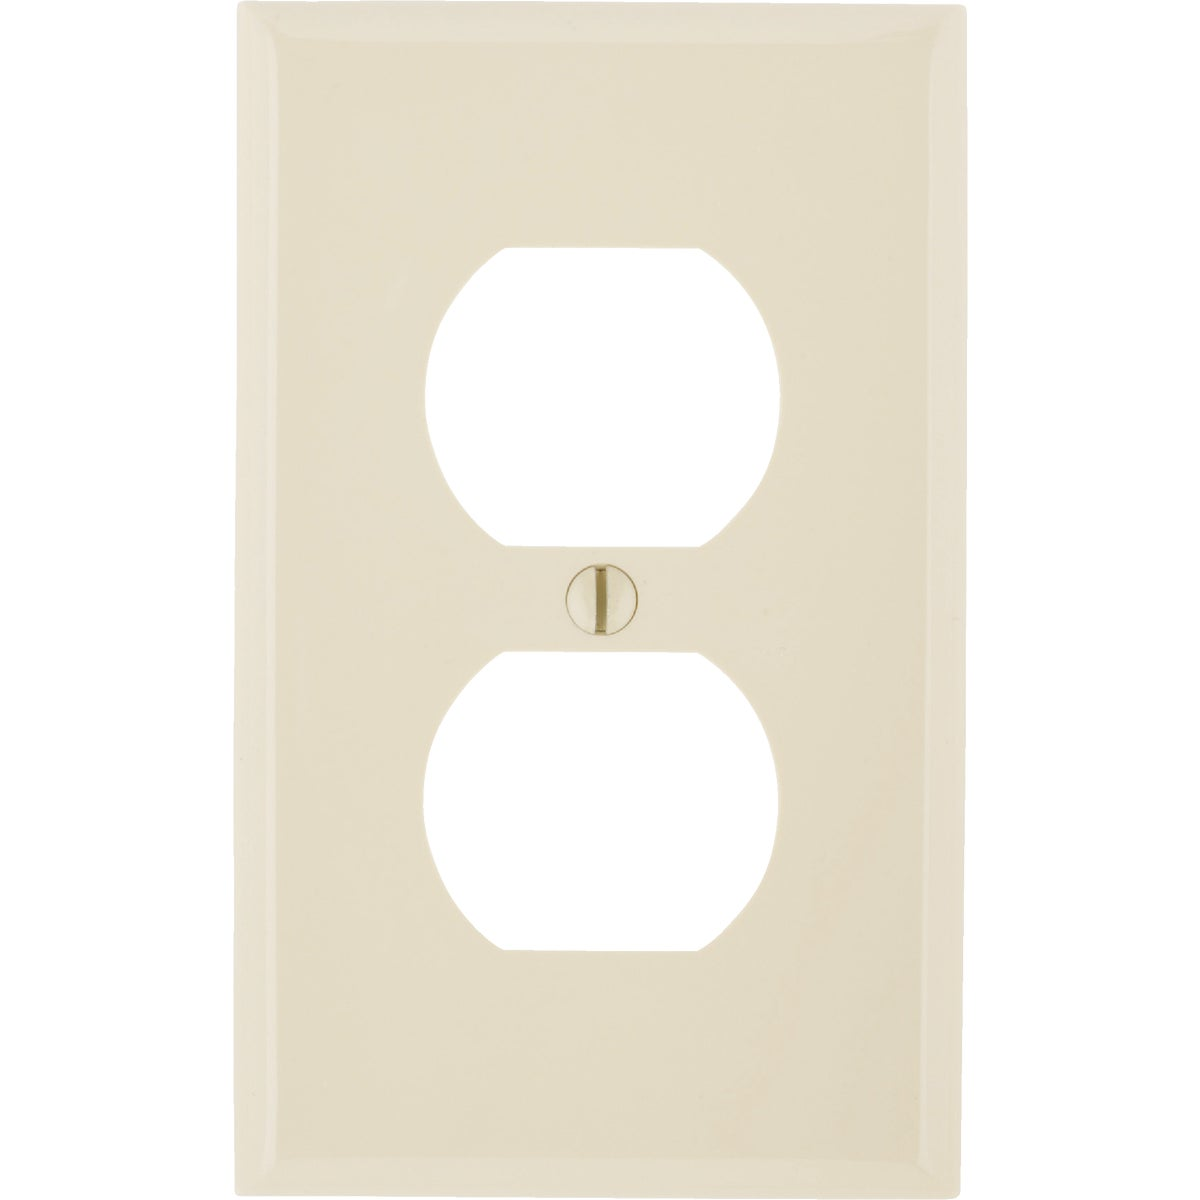 IV OUTLET WALL PLATE - 80703I by Leviton Mfg Co